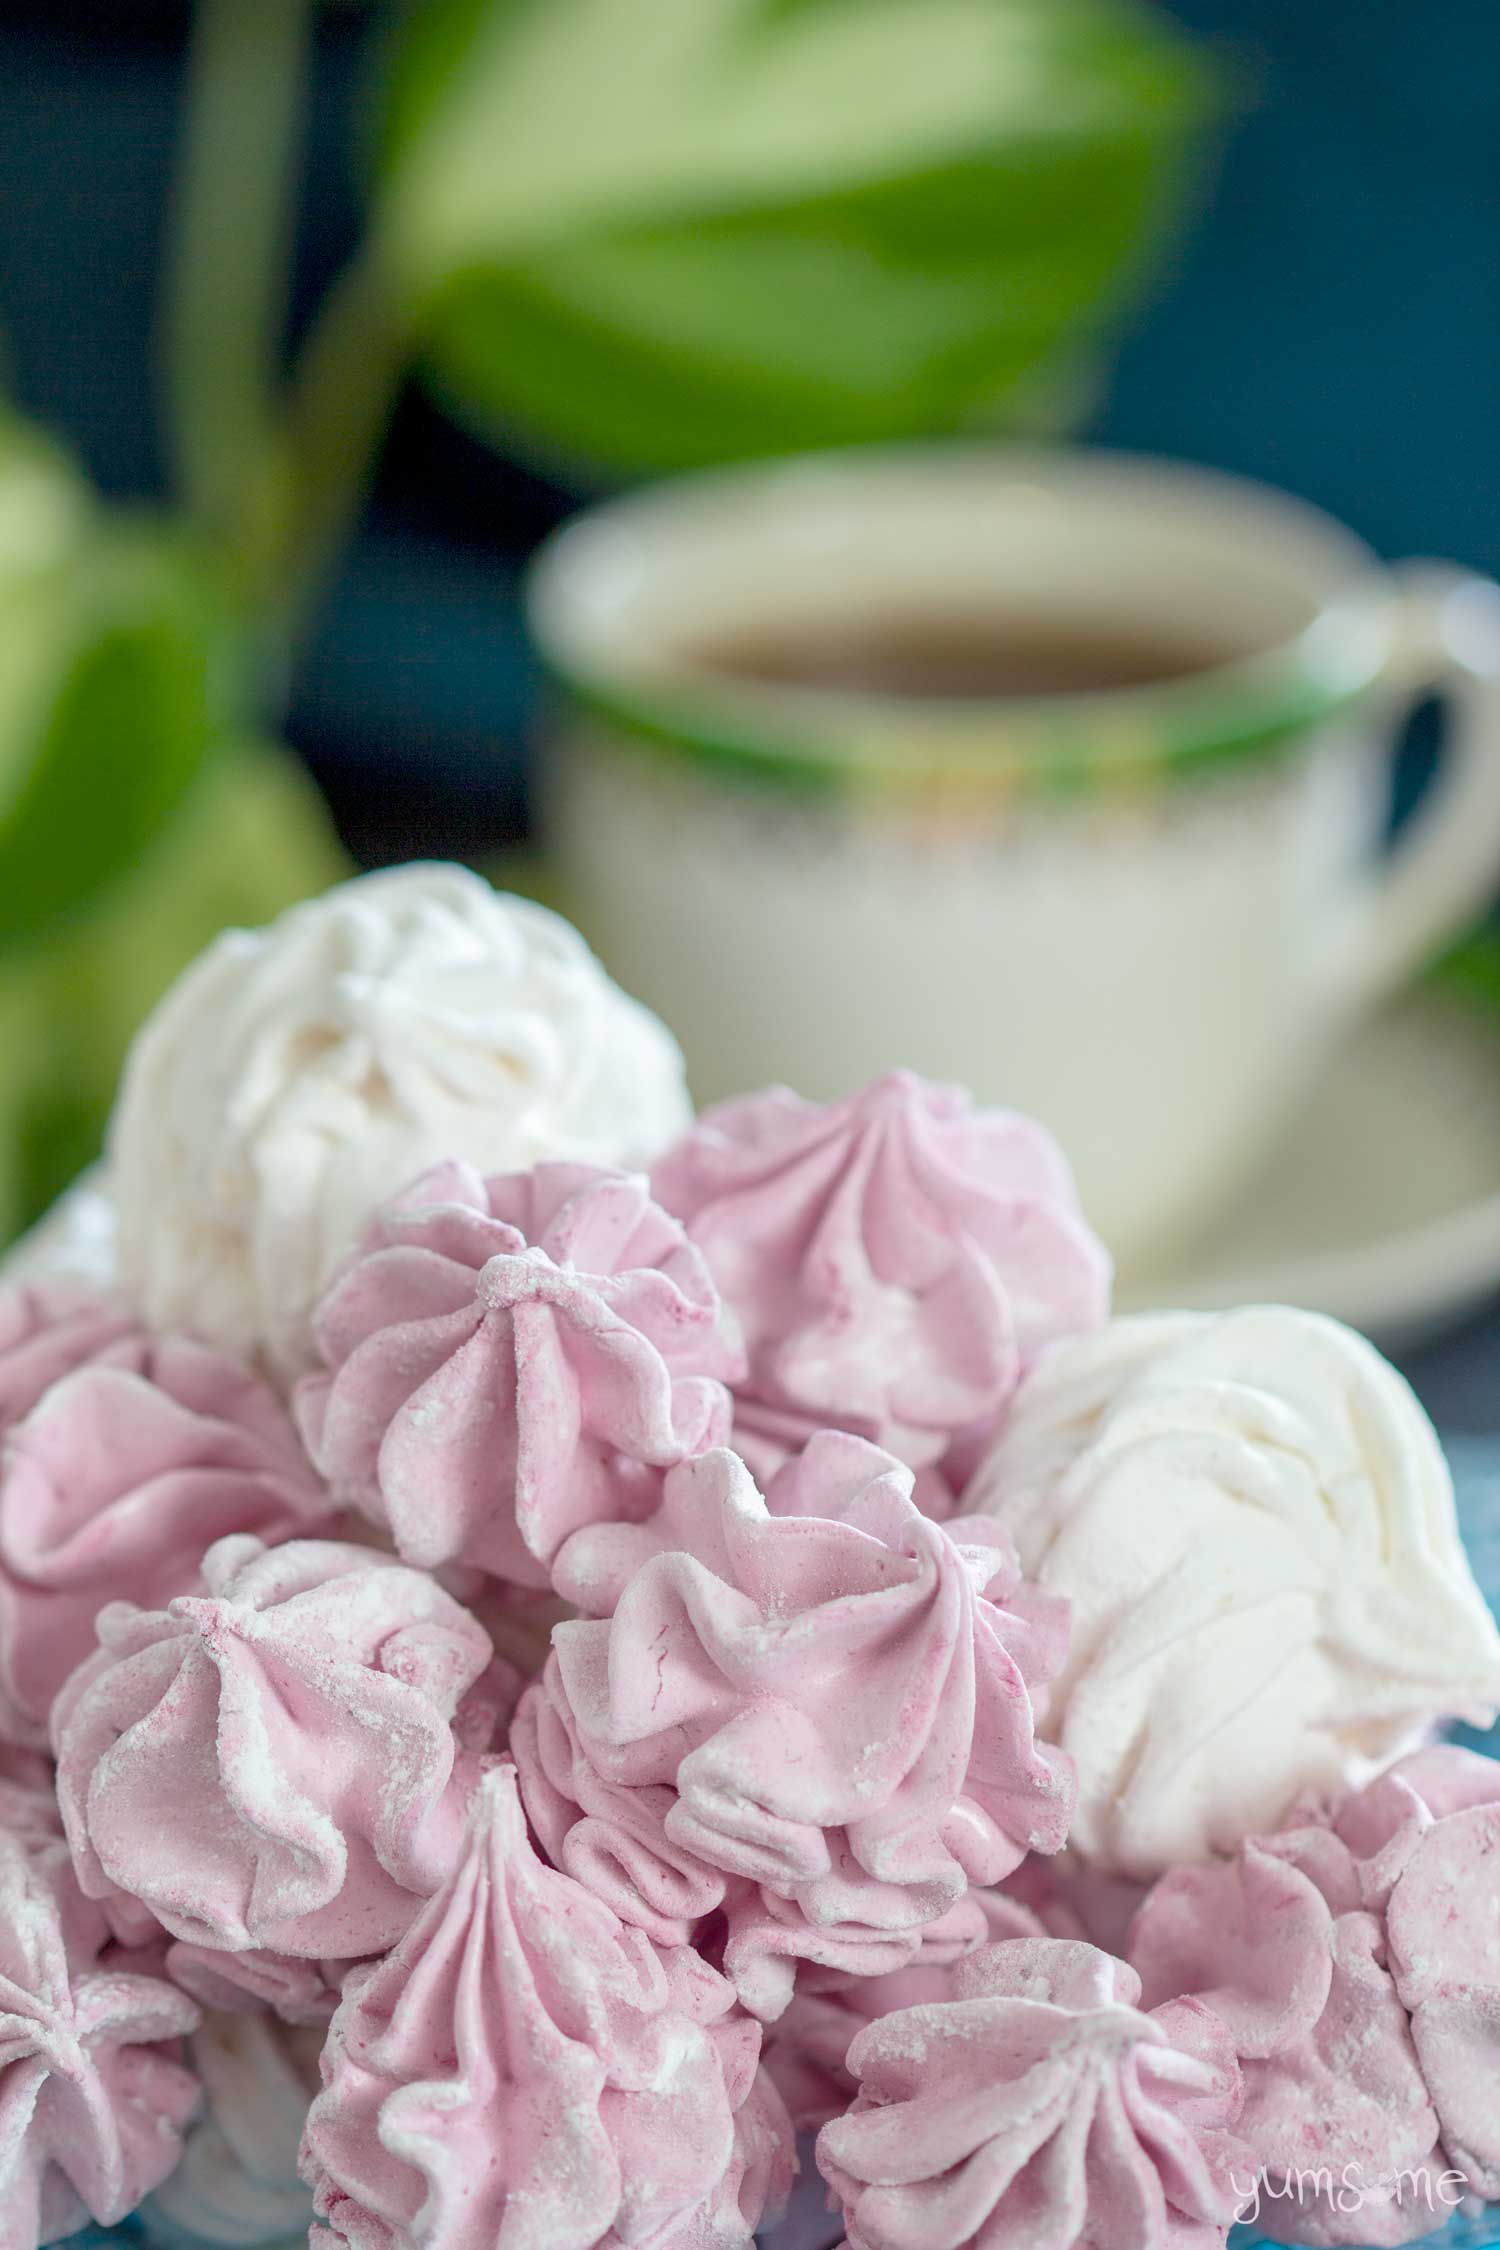 Pink and white vegan marshmallows and a cup of tea.